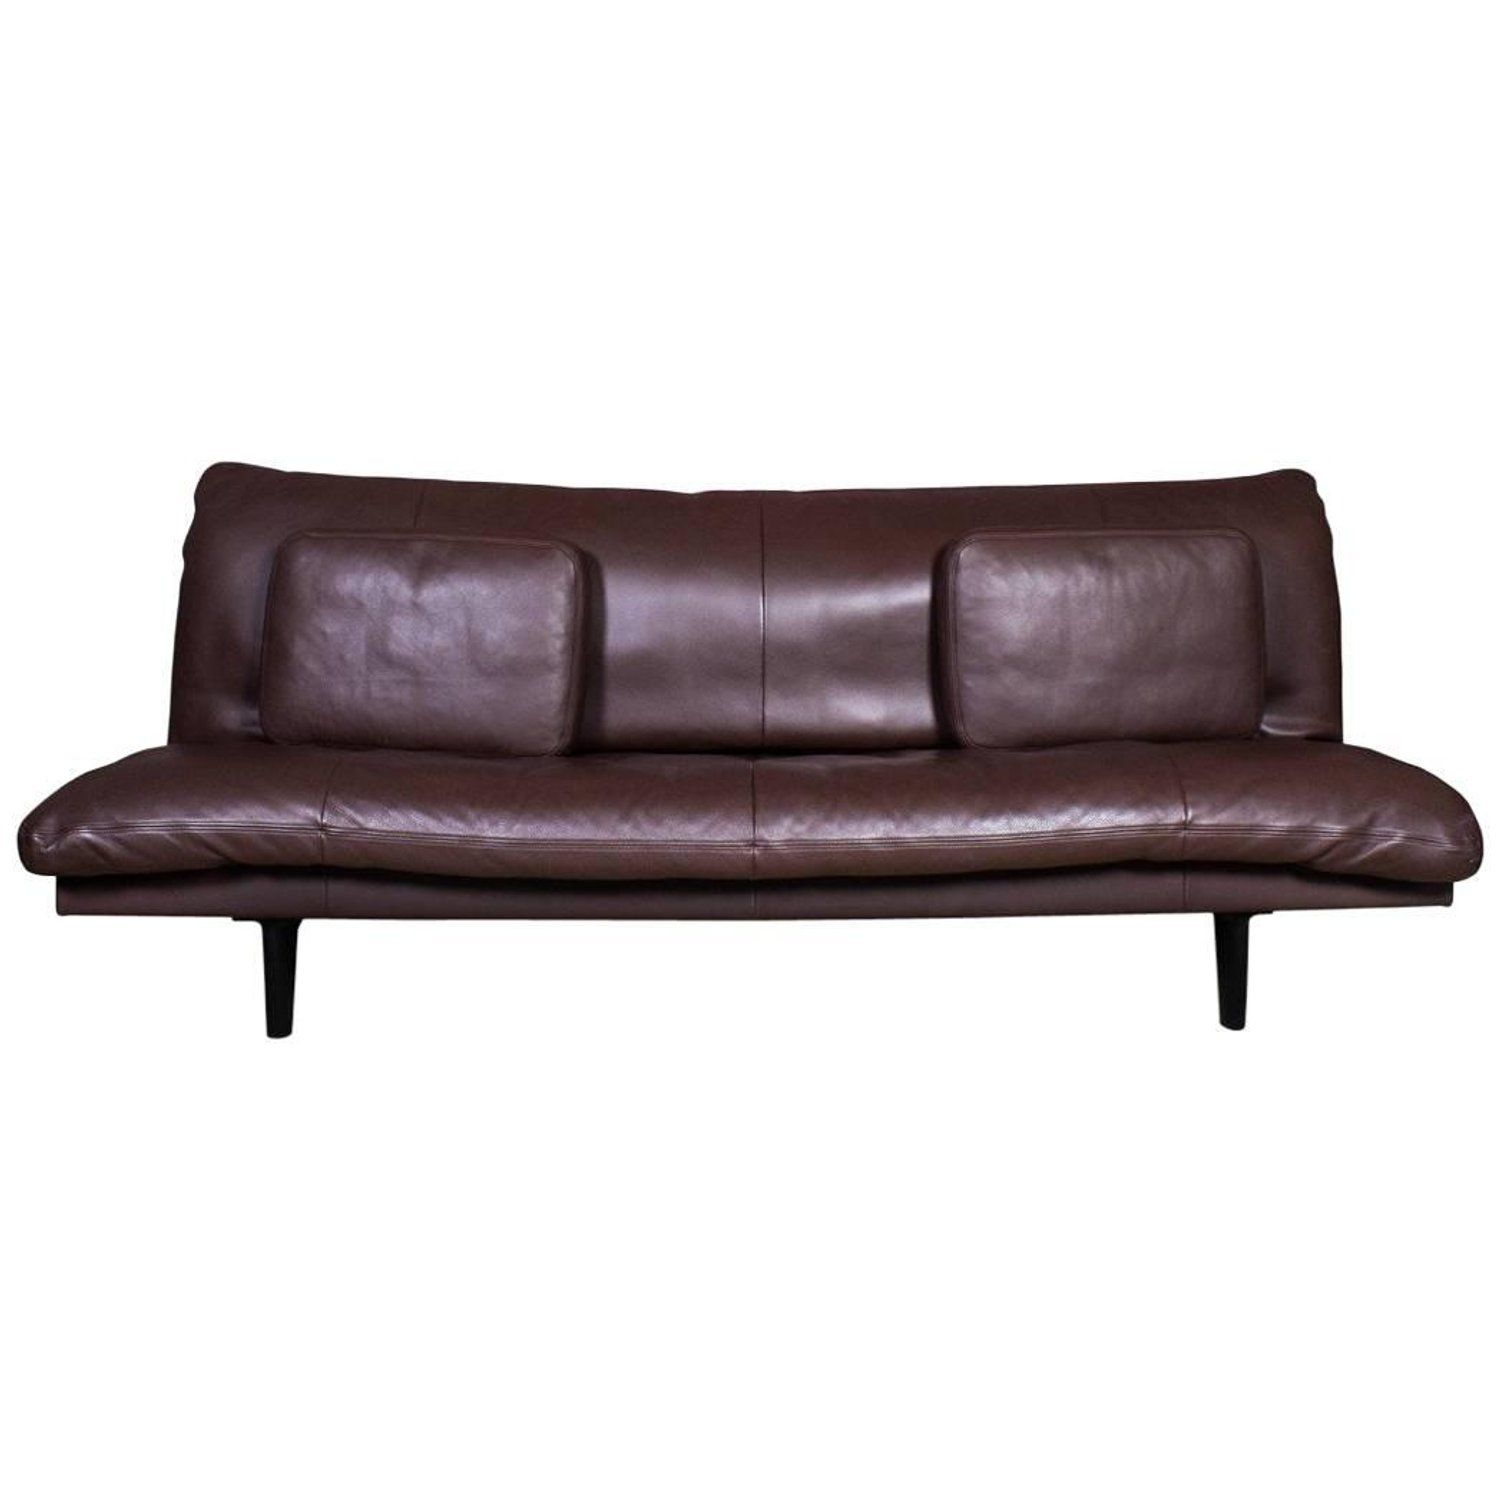 De Sede Chocolate Brown Leather Sofa Or Daybed Model Ds 169